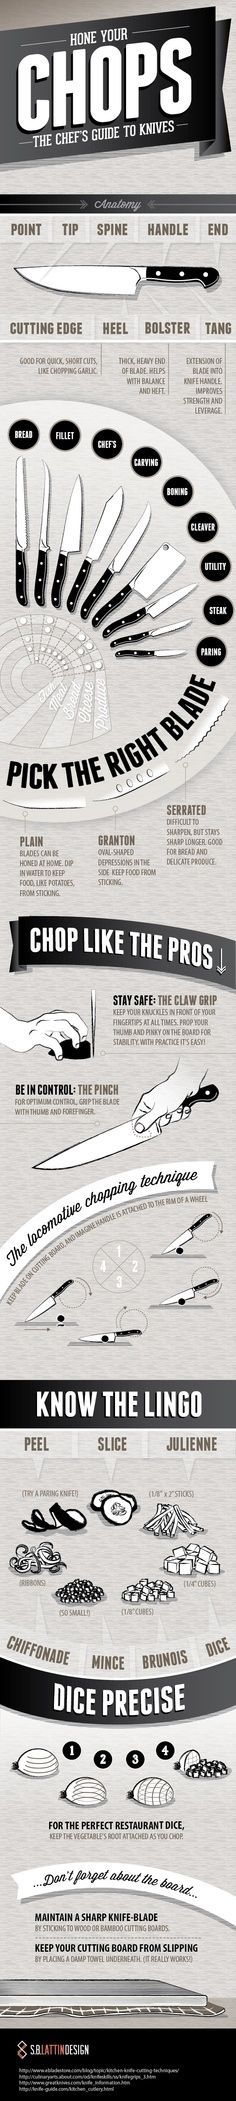 Know Your Knives and How to Use Them | Community Post: 34 Creative Kitchen Hacks That Every Cook Should Know